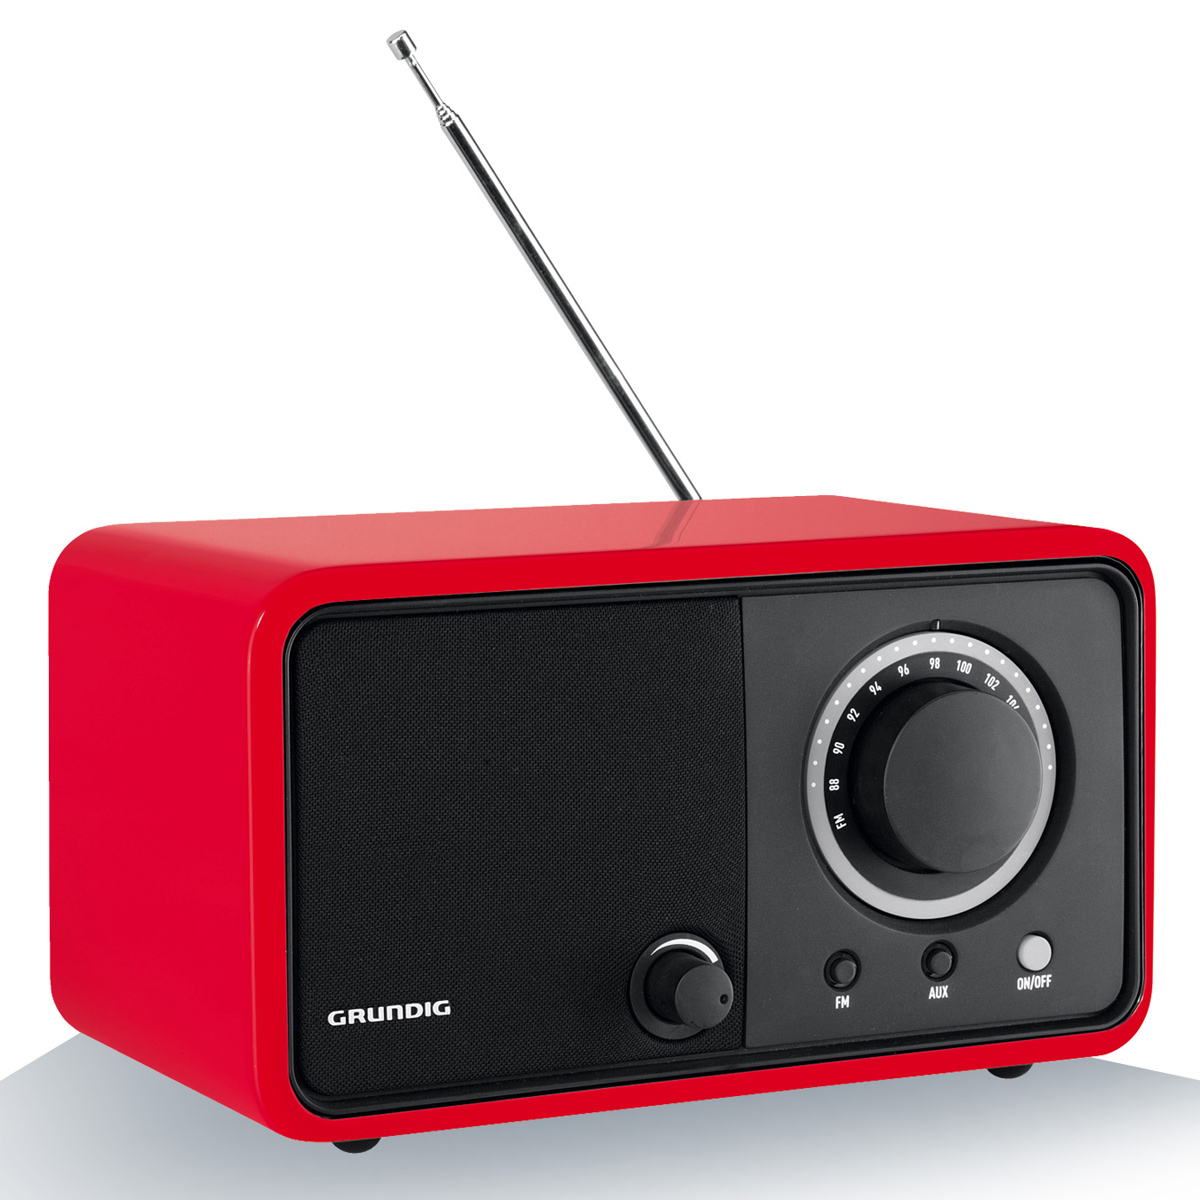 grundig tr 1200 rouge radio radio r veil grundig sur. Black Bedroom Furniture Sets. Home Design Ideas